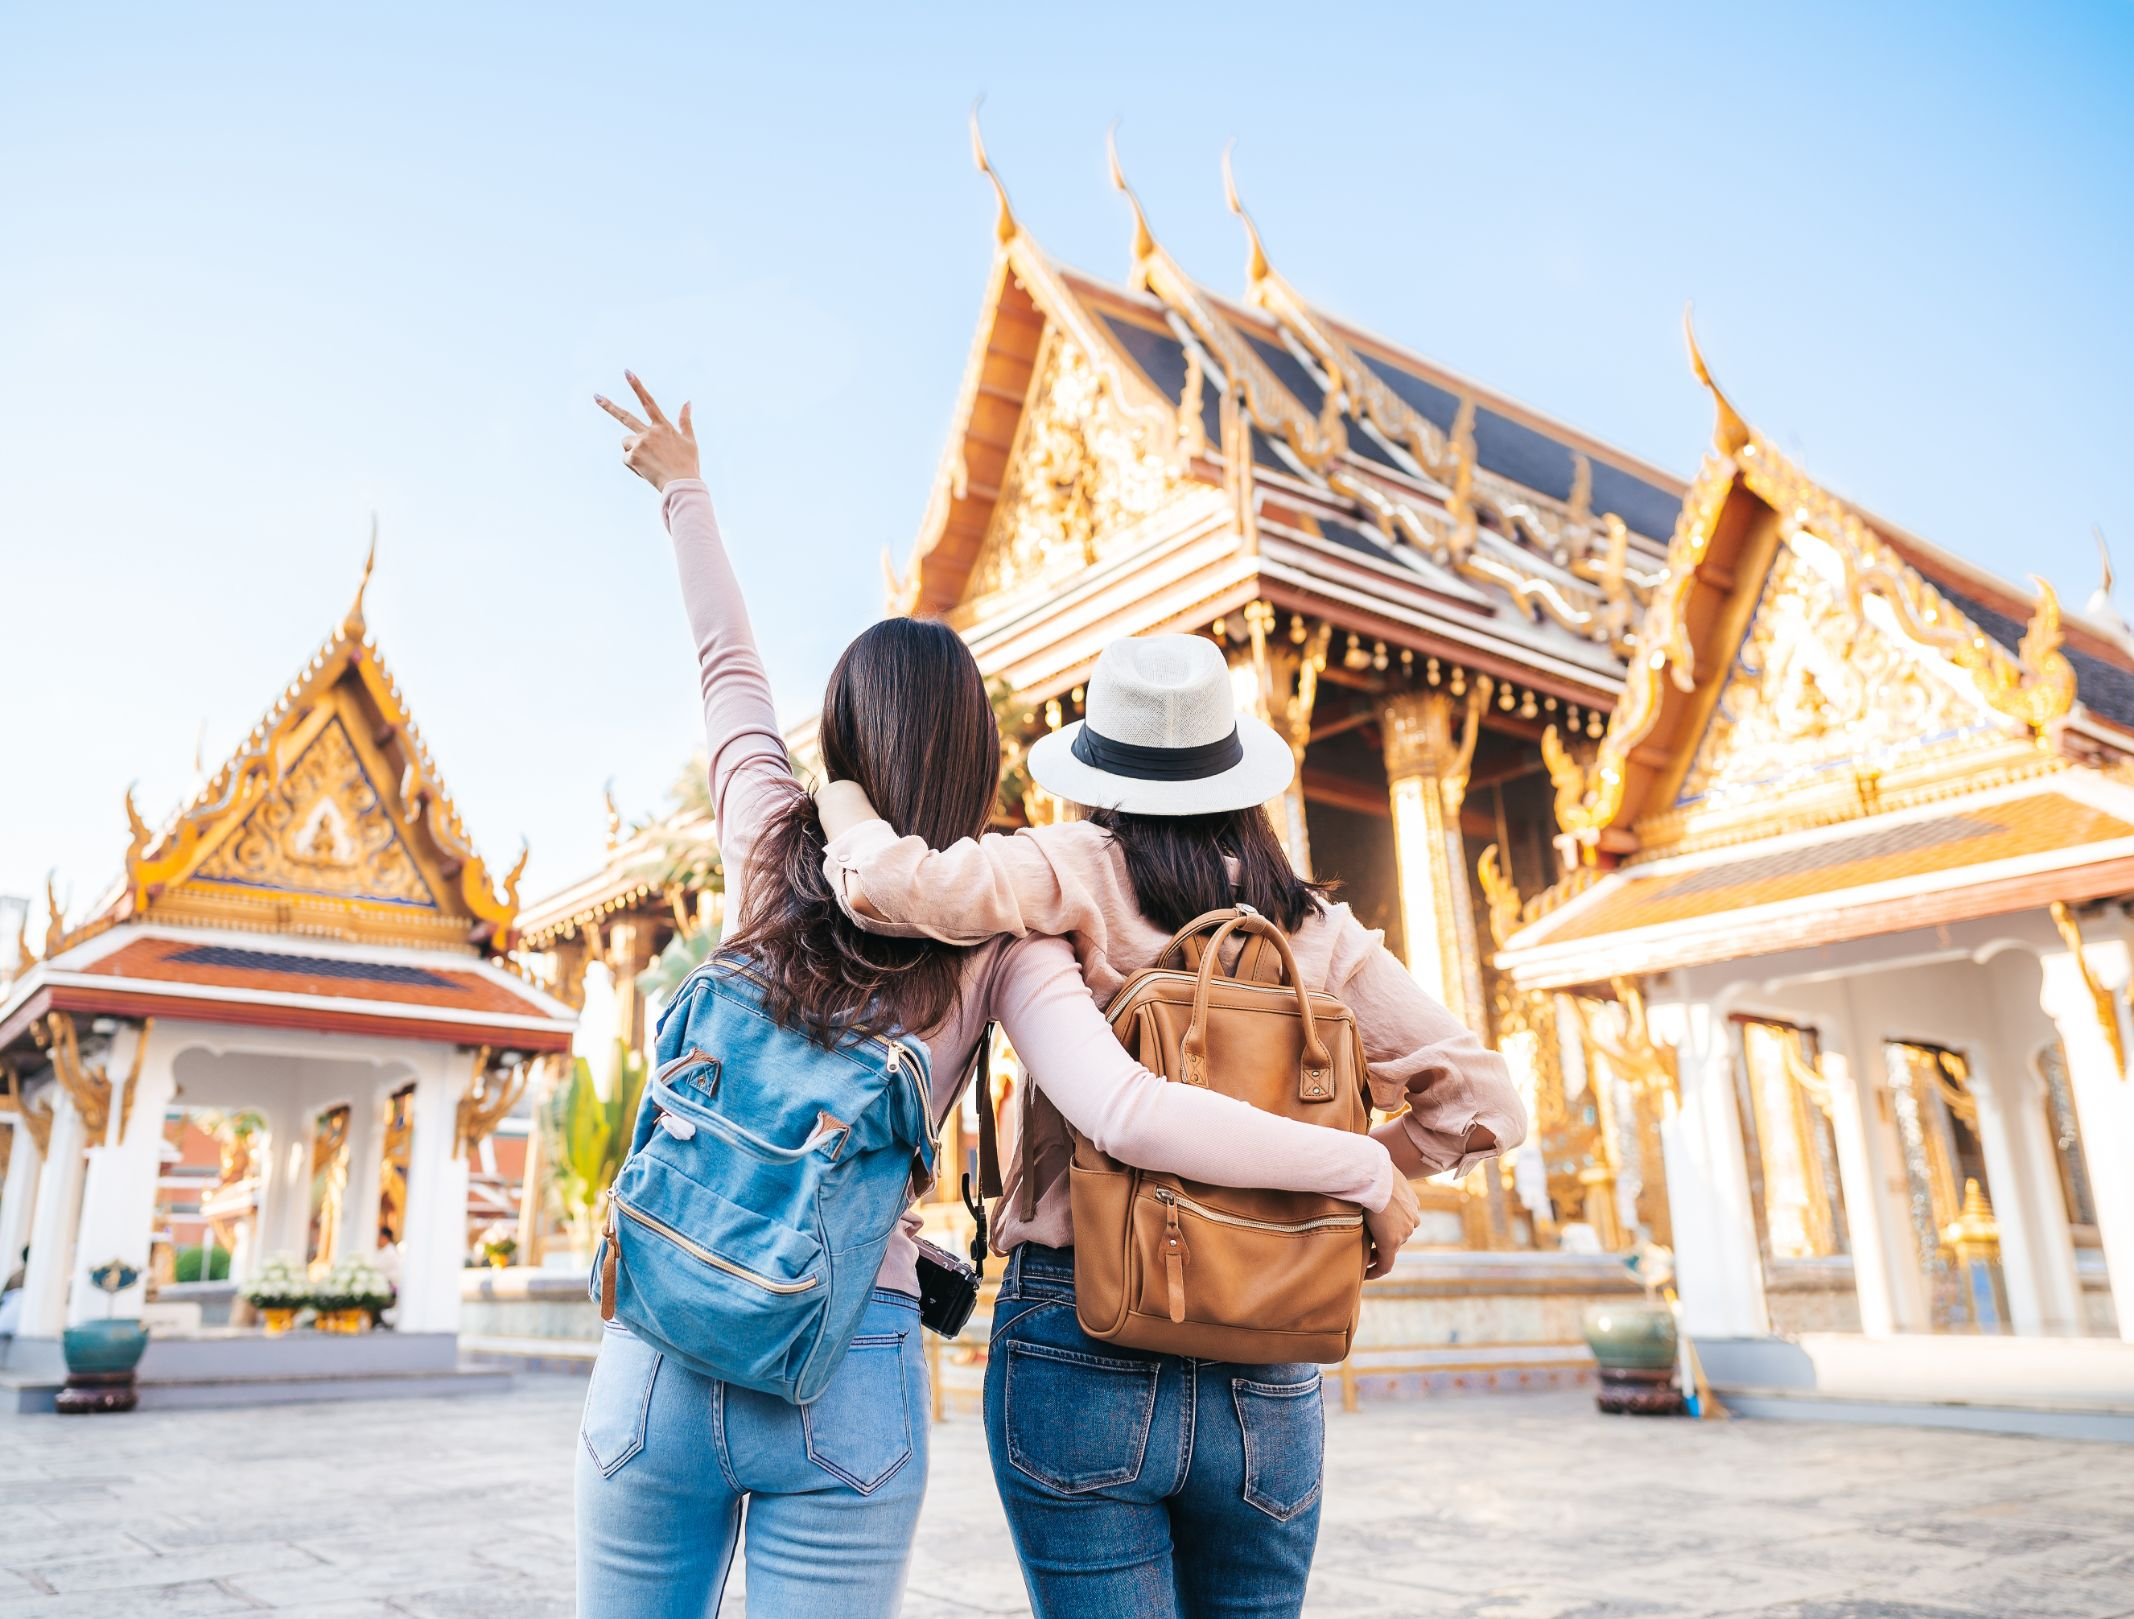 7 Scientific Facts That Prove Travel is Good For Your Health